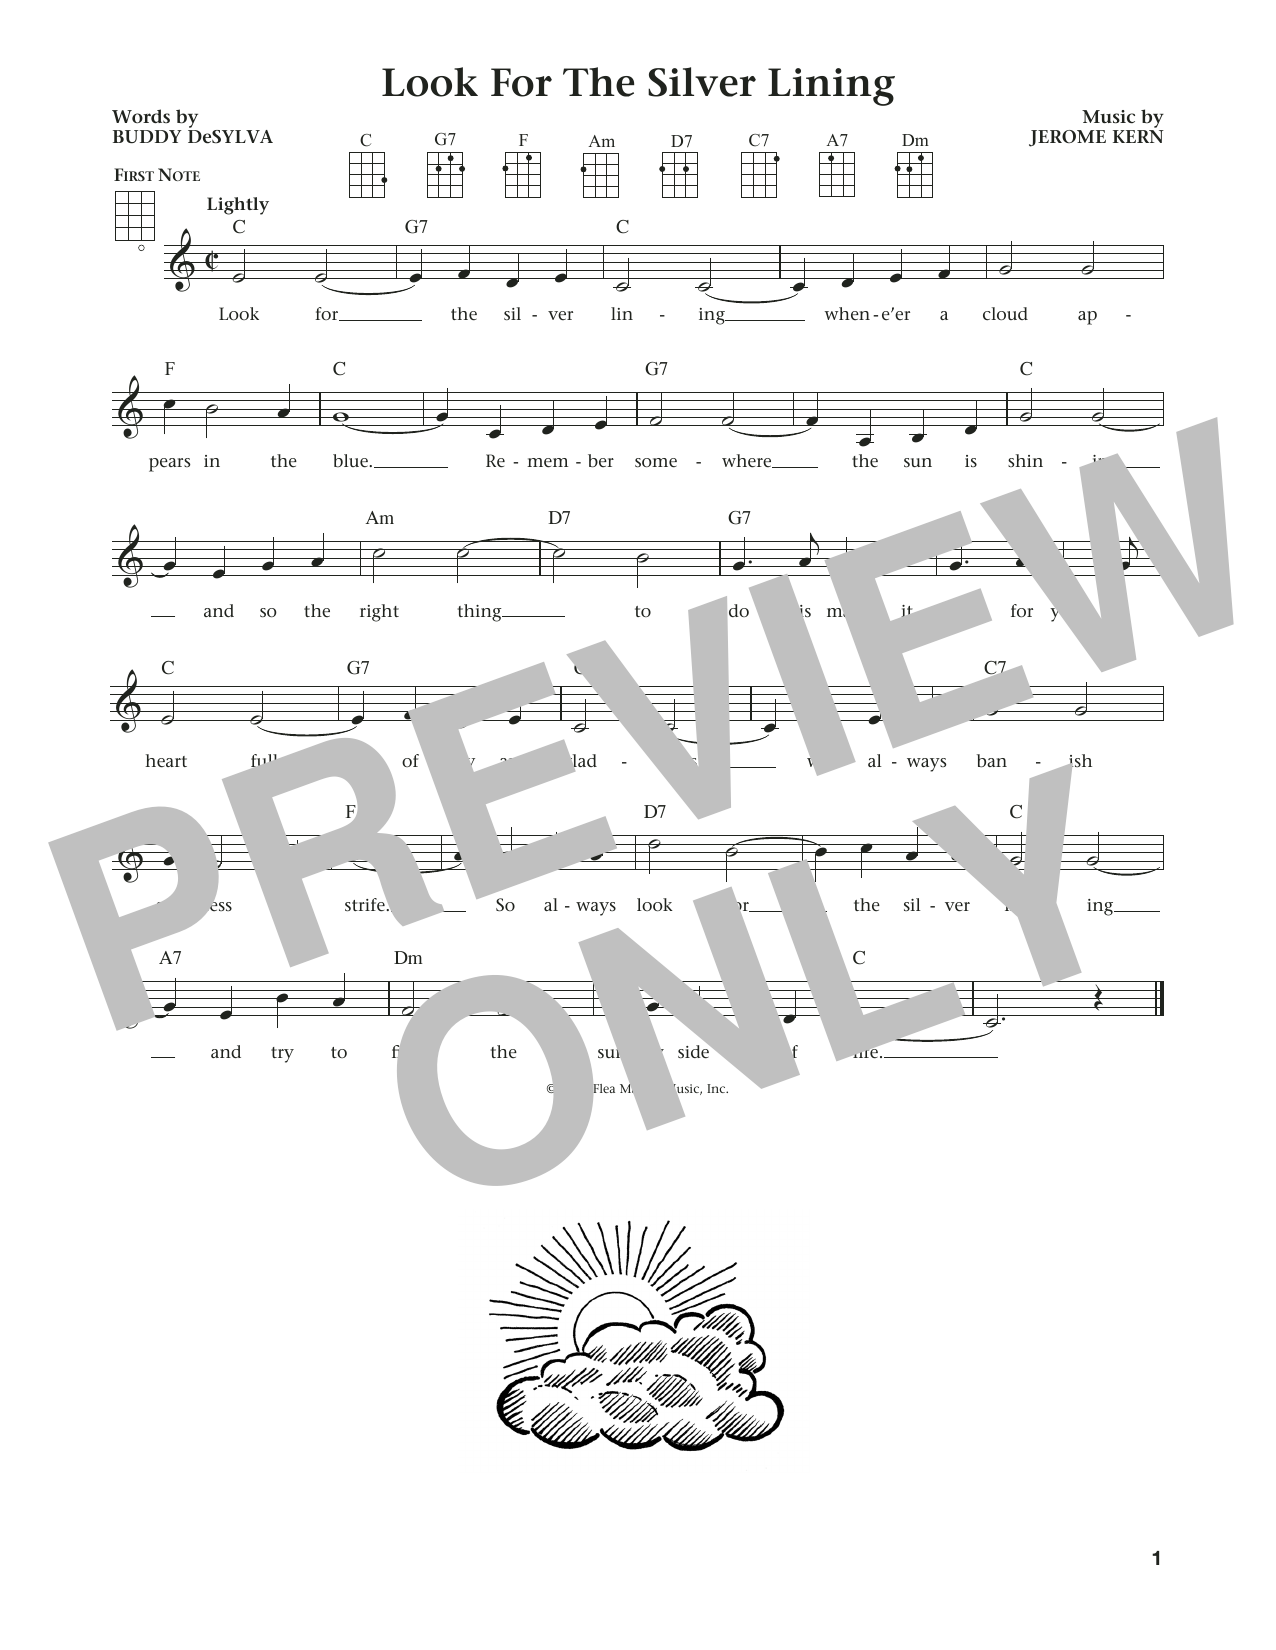 Look For The Silver Lining (from The Daily Ukulele) (arr. Liz and Jim Beloff) (Ukulele)